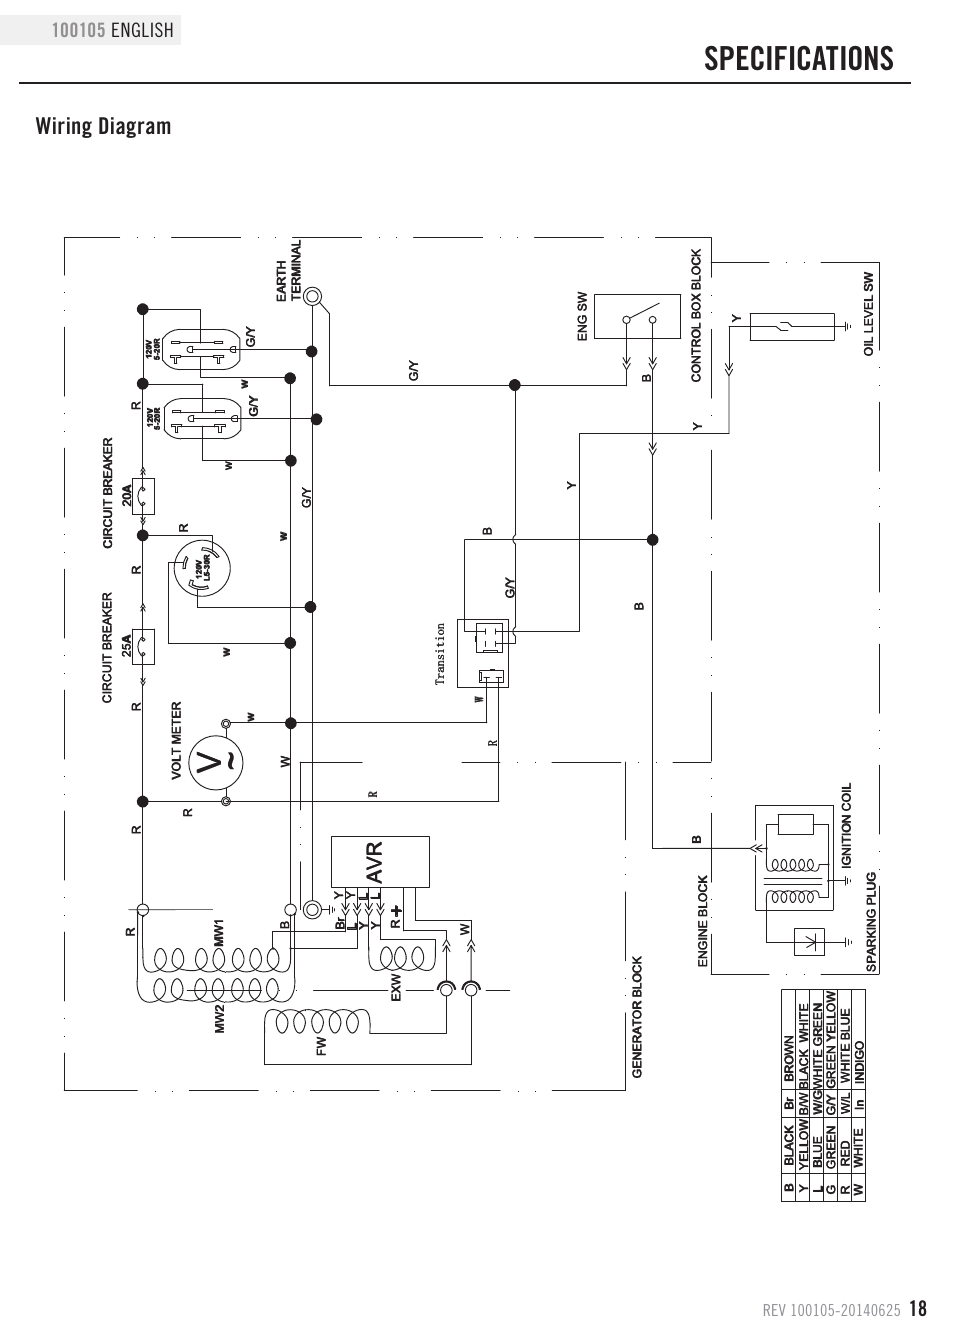 hight resolution of specifications wiring diagram champion power equipment 100105 user manual page 21 30